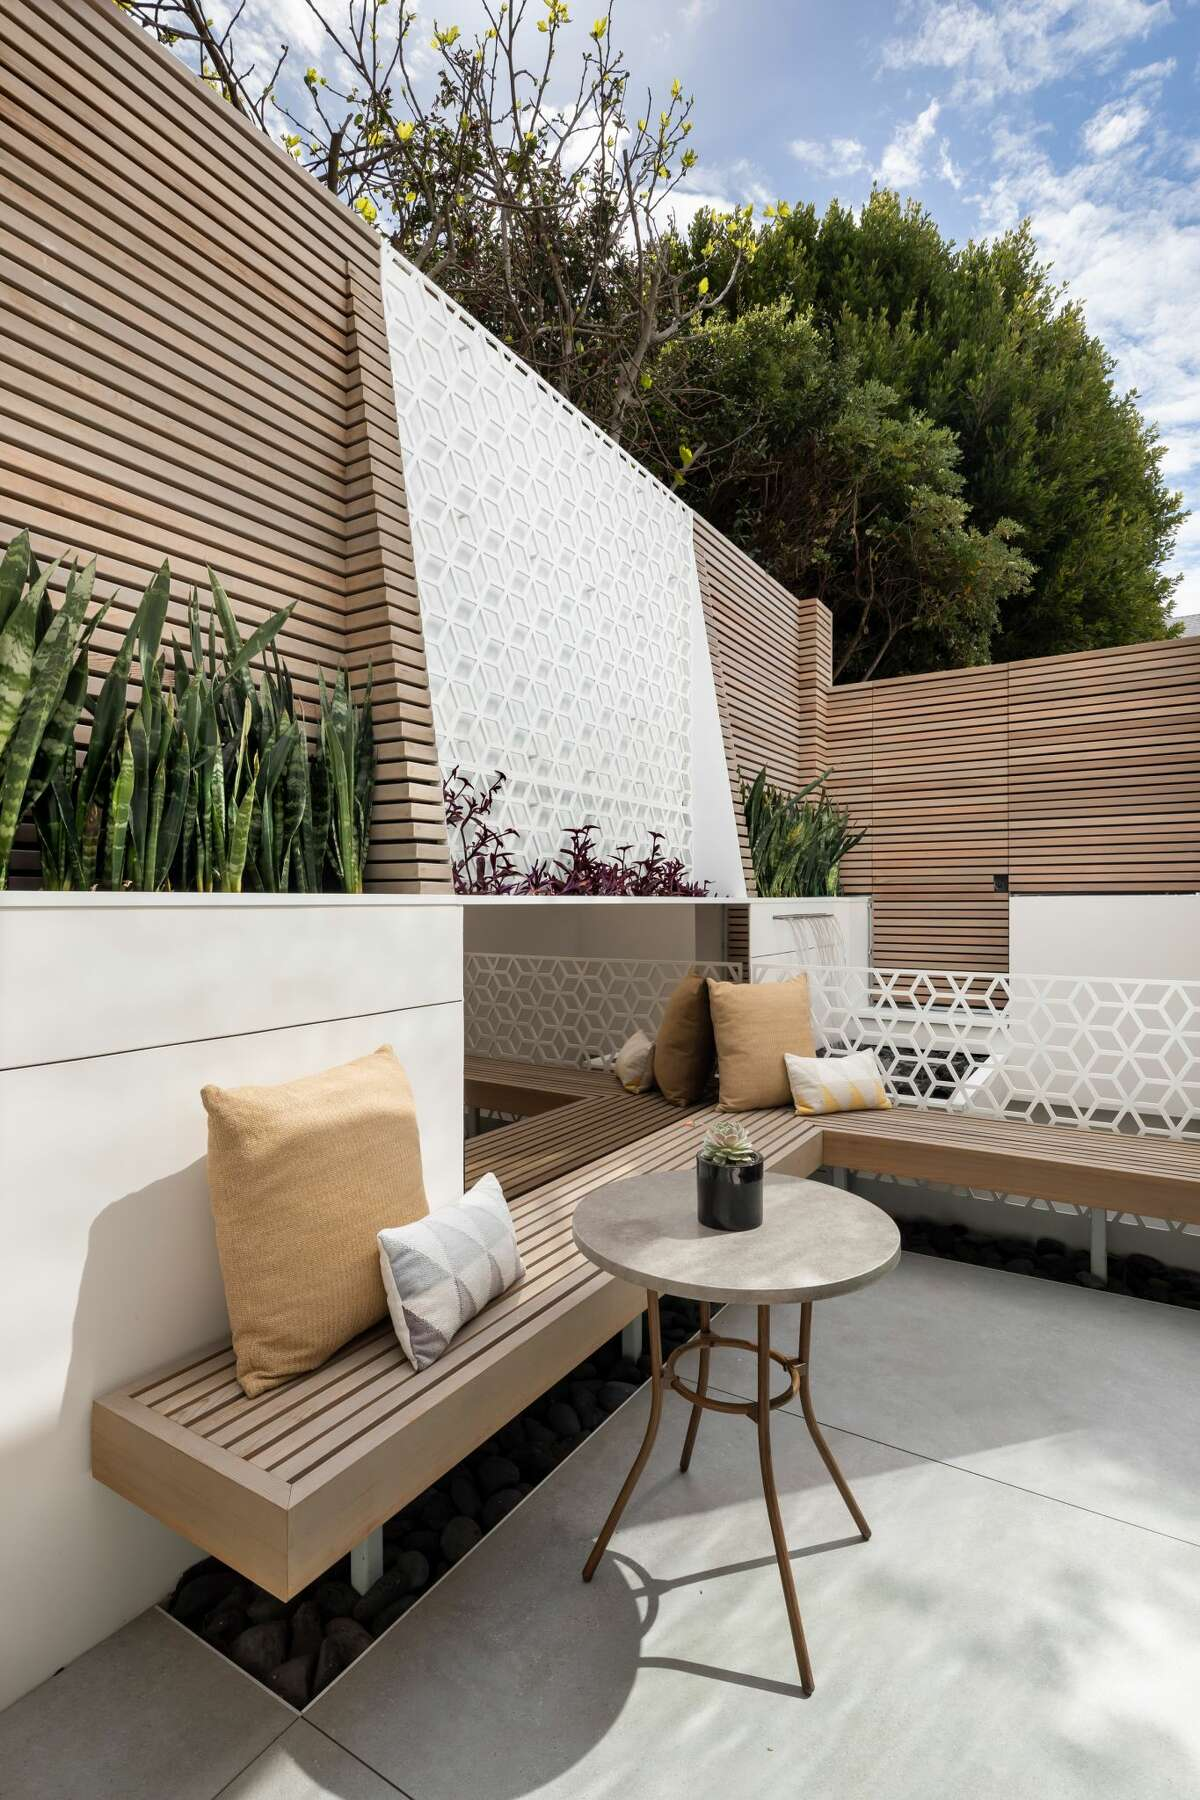 The lower-level patio features lounge seating and an impressive water feature.